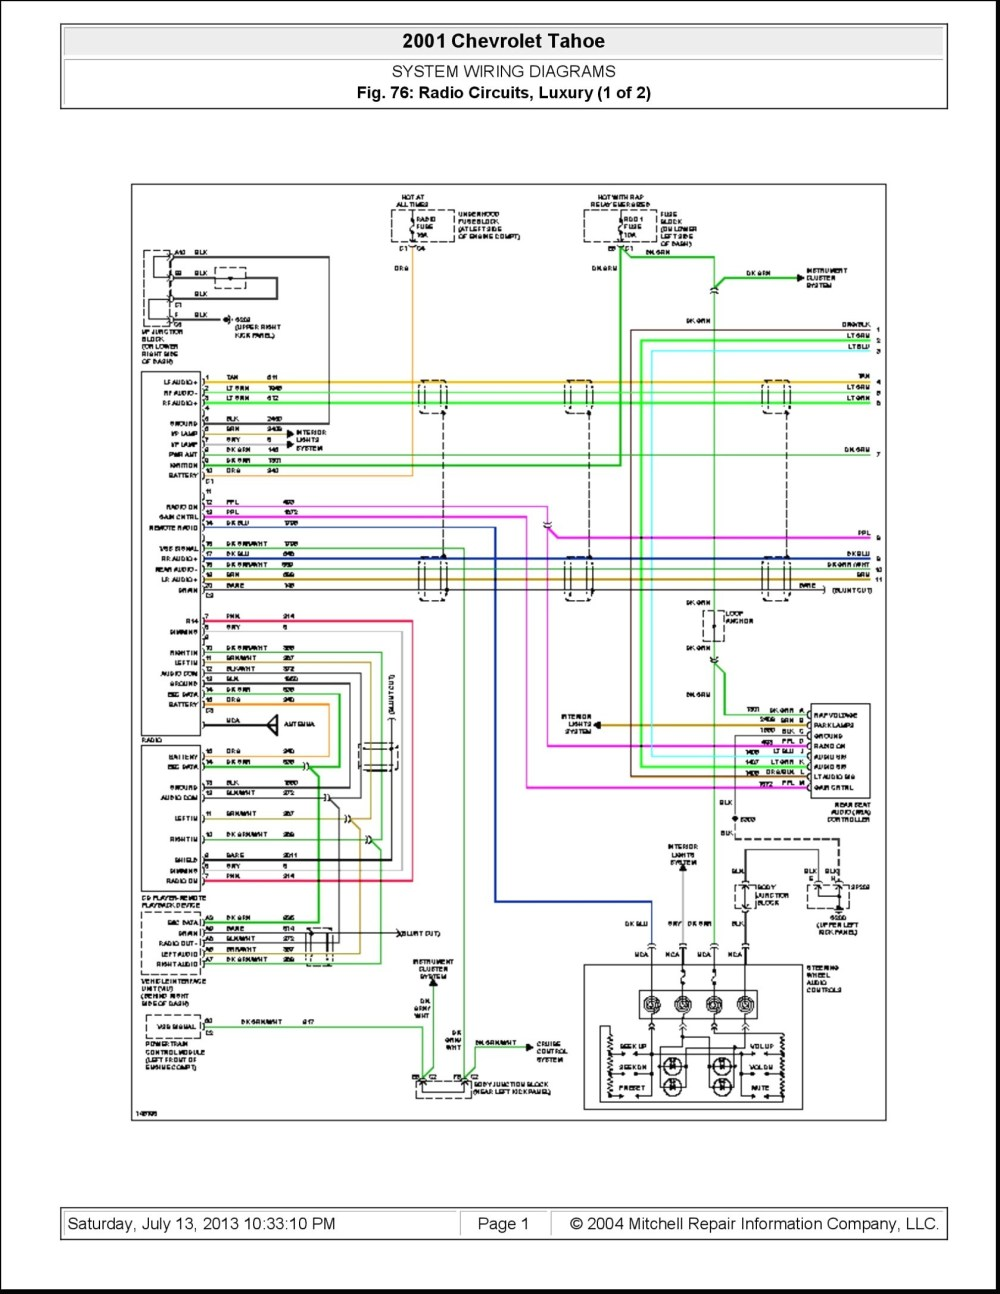 medium resolution of 95 camaro radio wiring diagram wiring diagram centre 1998 chevrolet s10 pickup stereo radio wiring diagram 1998 chevy s10 stereo wiring